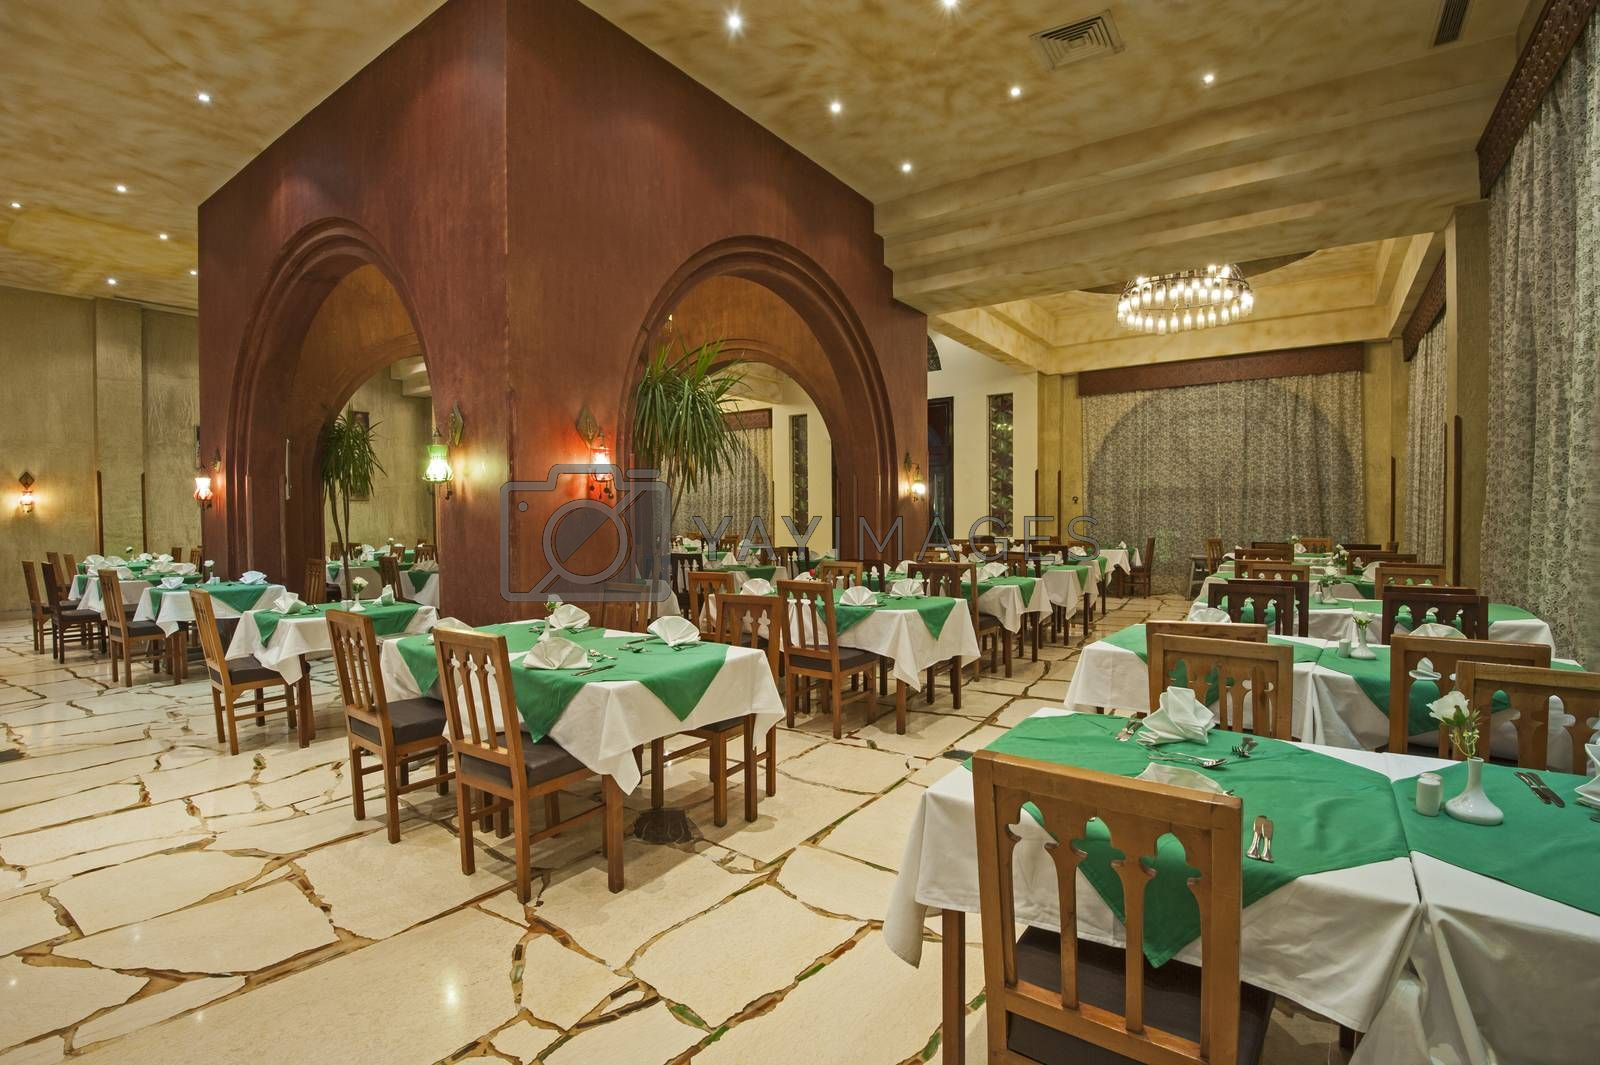 Interior design of a luxury hotel restaurant dining area with ornate decor